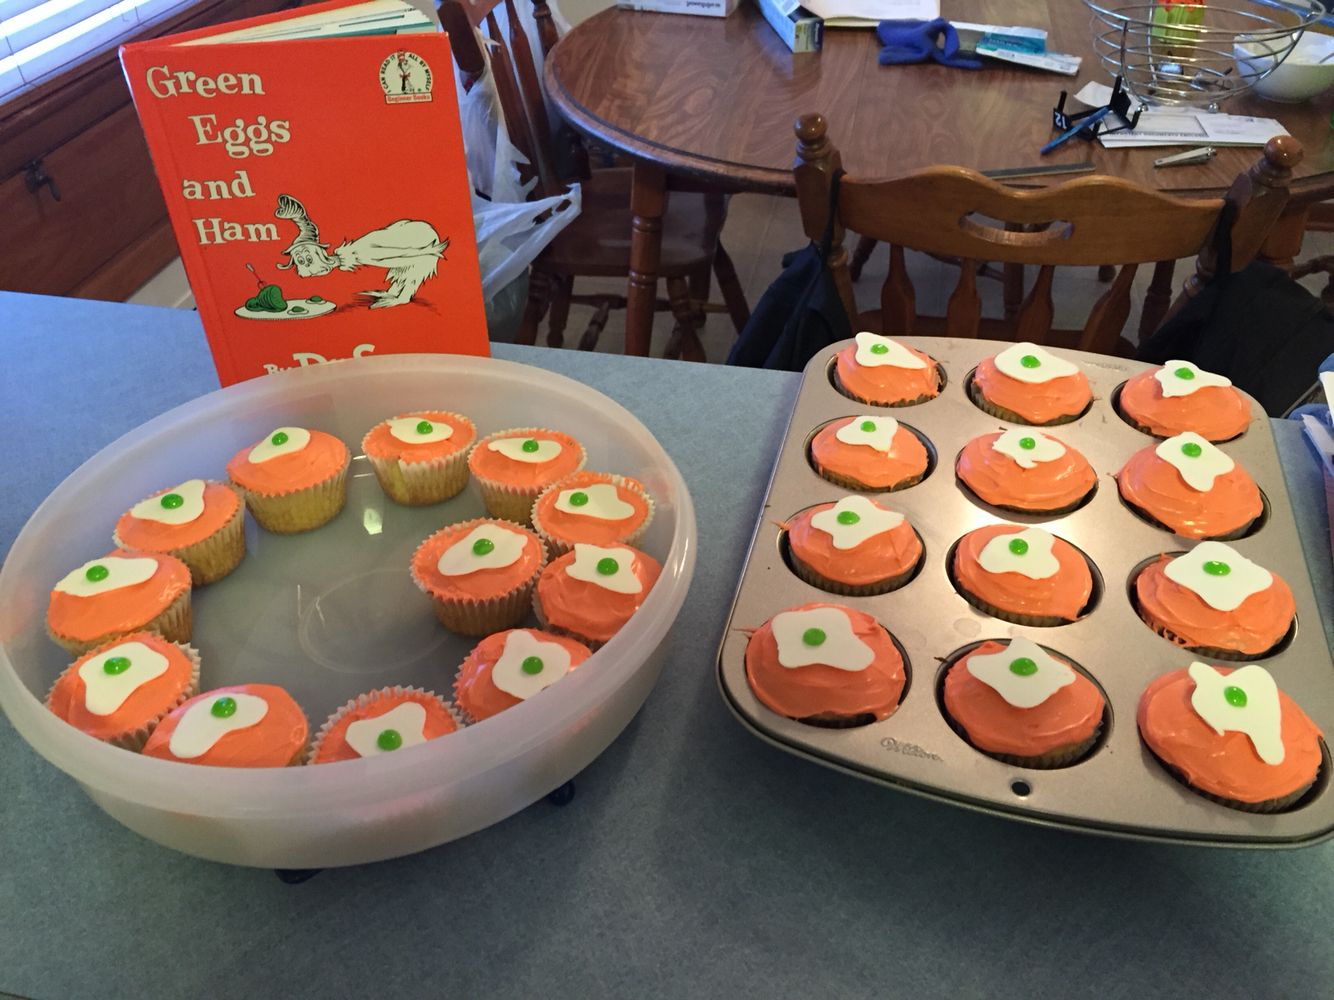 Green Eggs & Ham Cupcakes for Dr. Seuss Day!